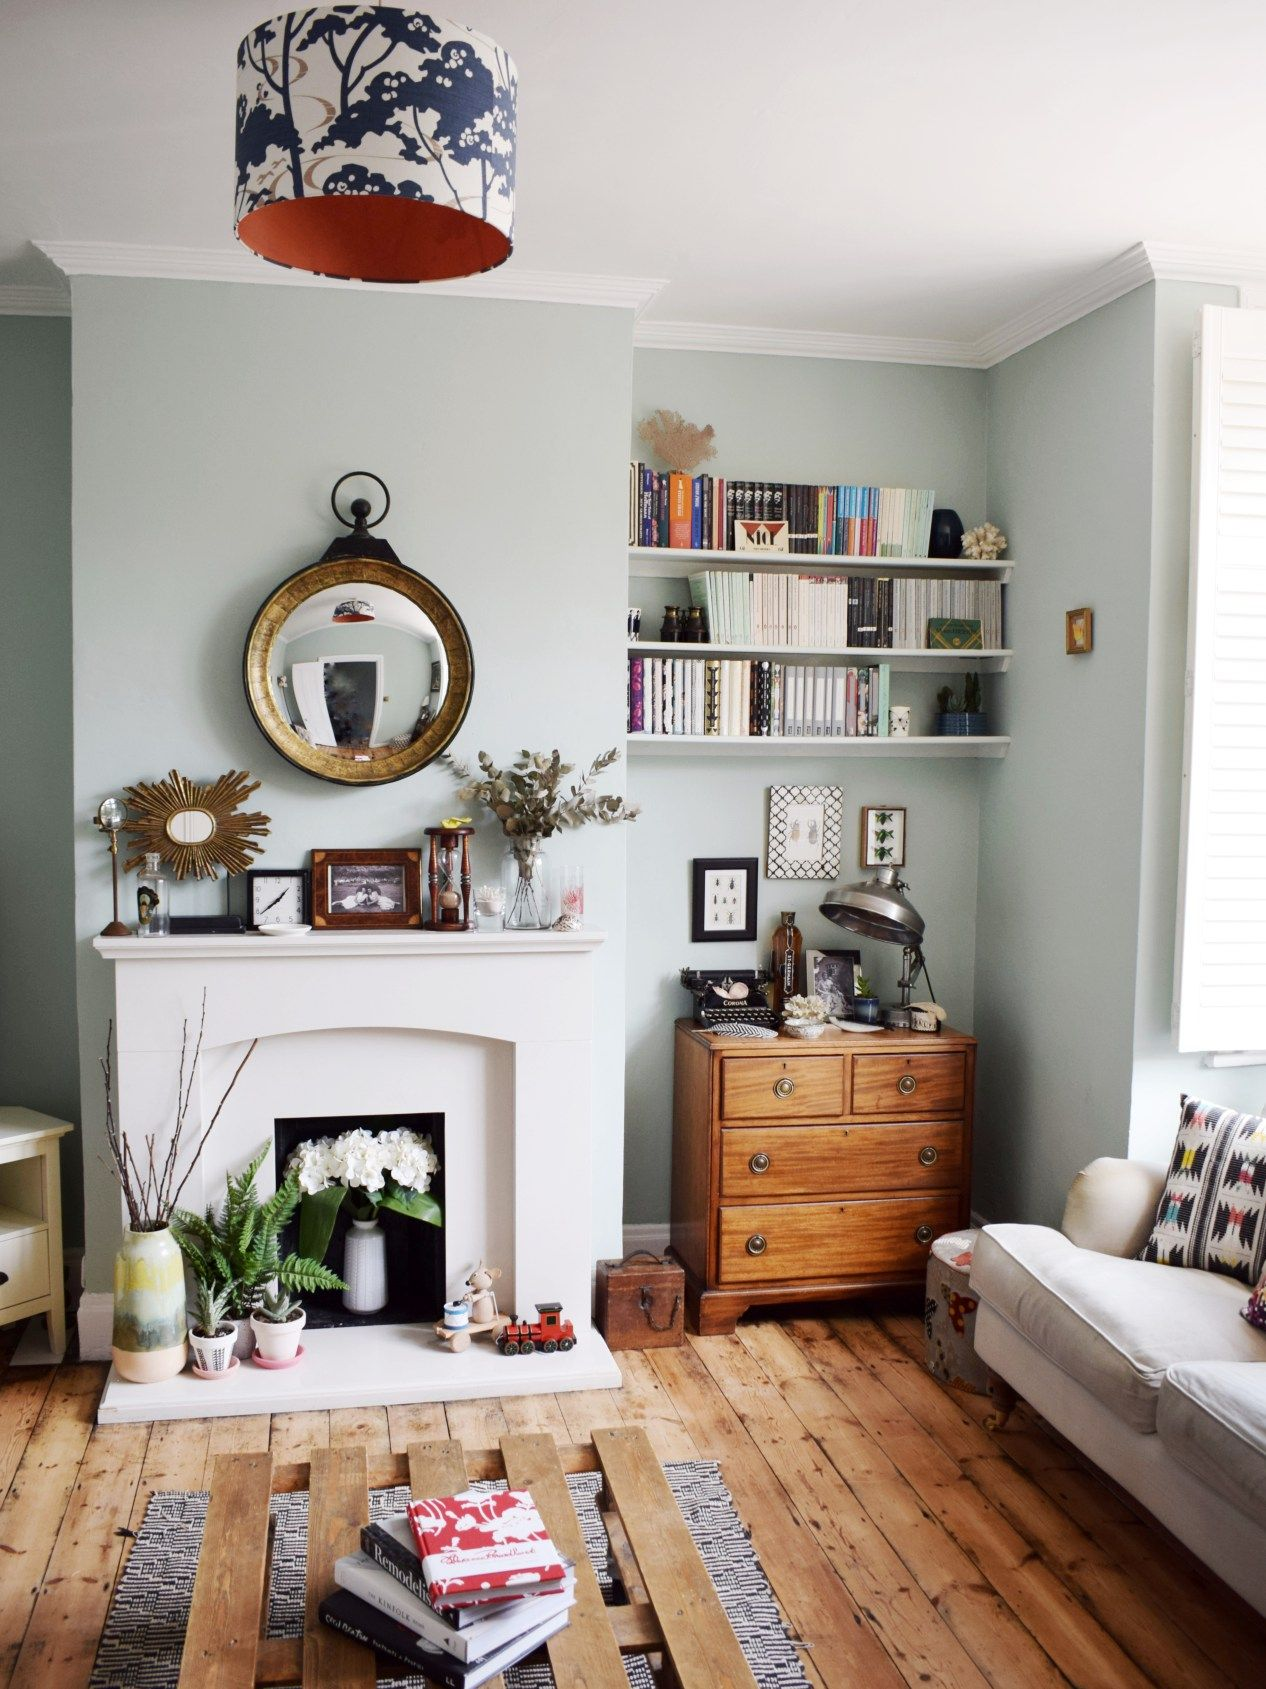 Vintage Living Room Ideas For Small Spaces: Living Room Makeover: Our Natural History Infused Bohemian